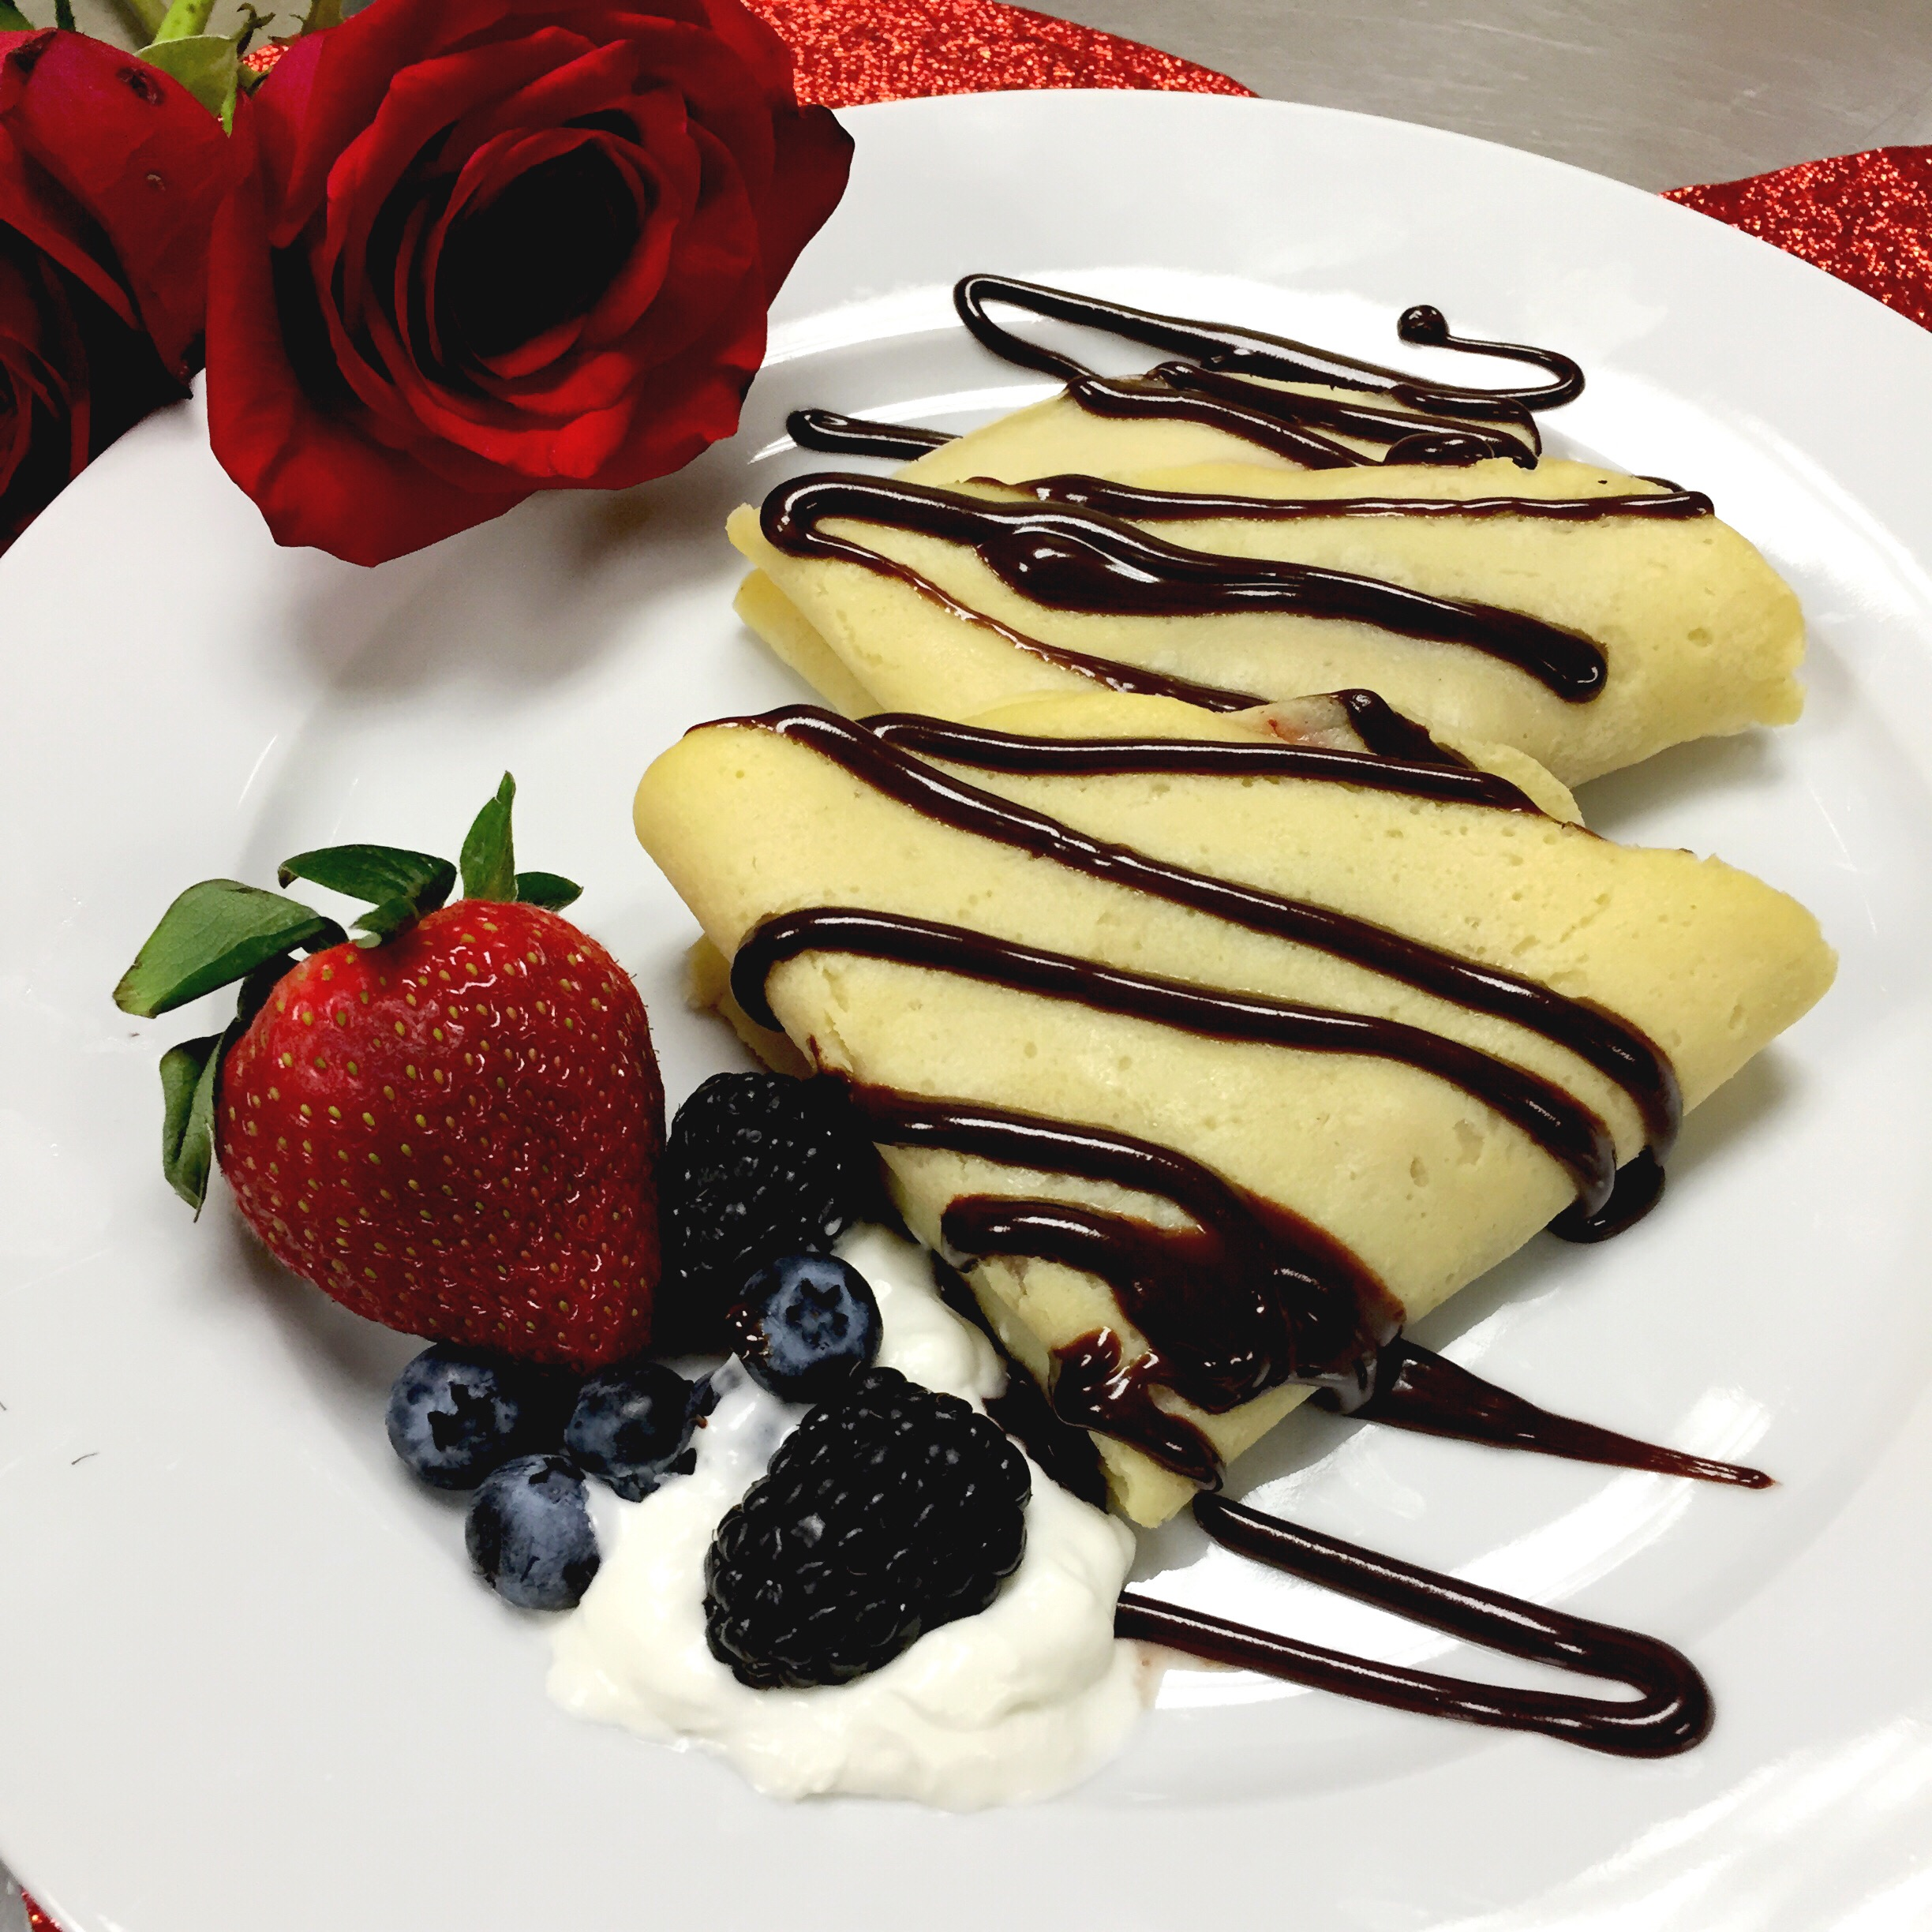 Strawberry Coulis & Homemade Whipped Cream Crepes for Valentine's Day- ChefShayna.com